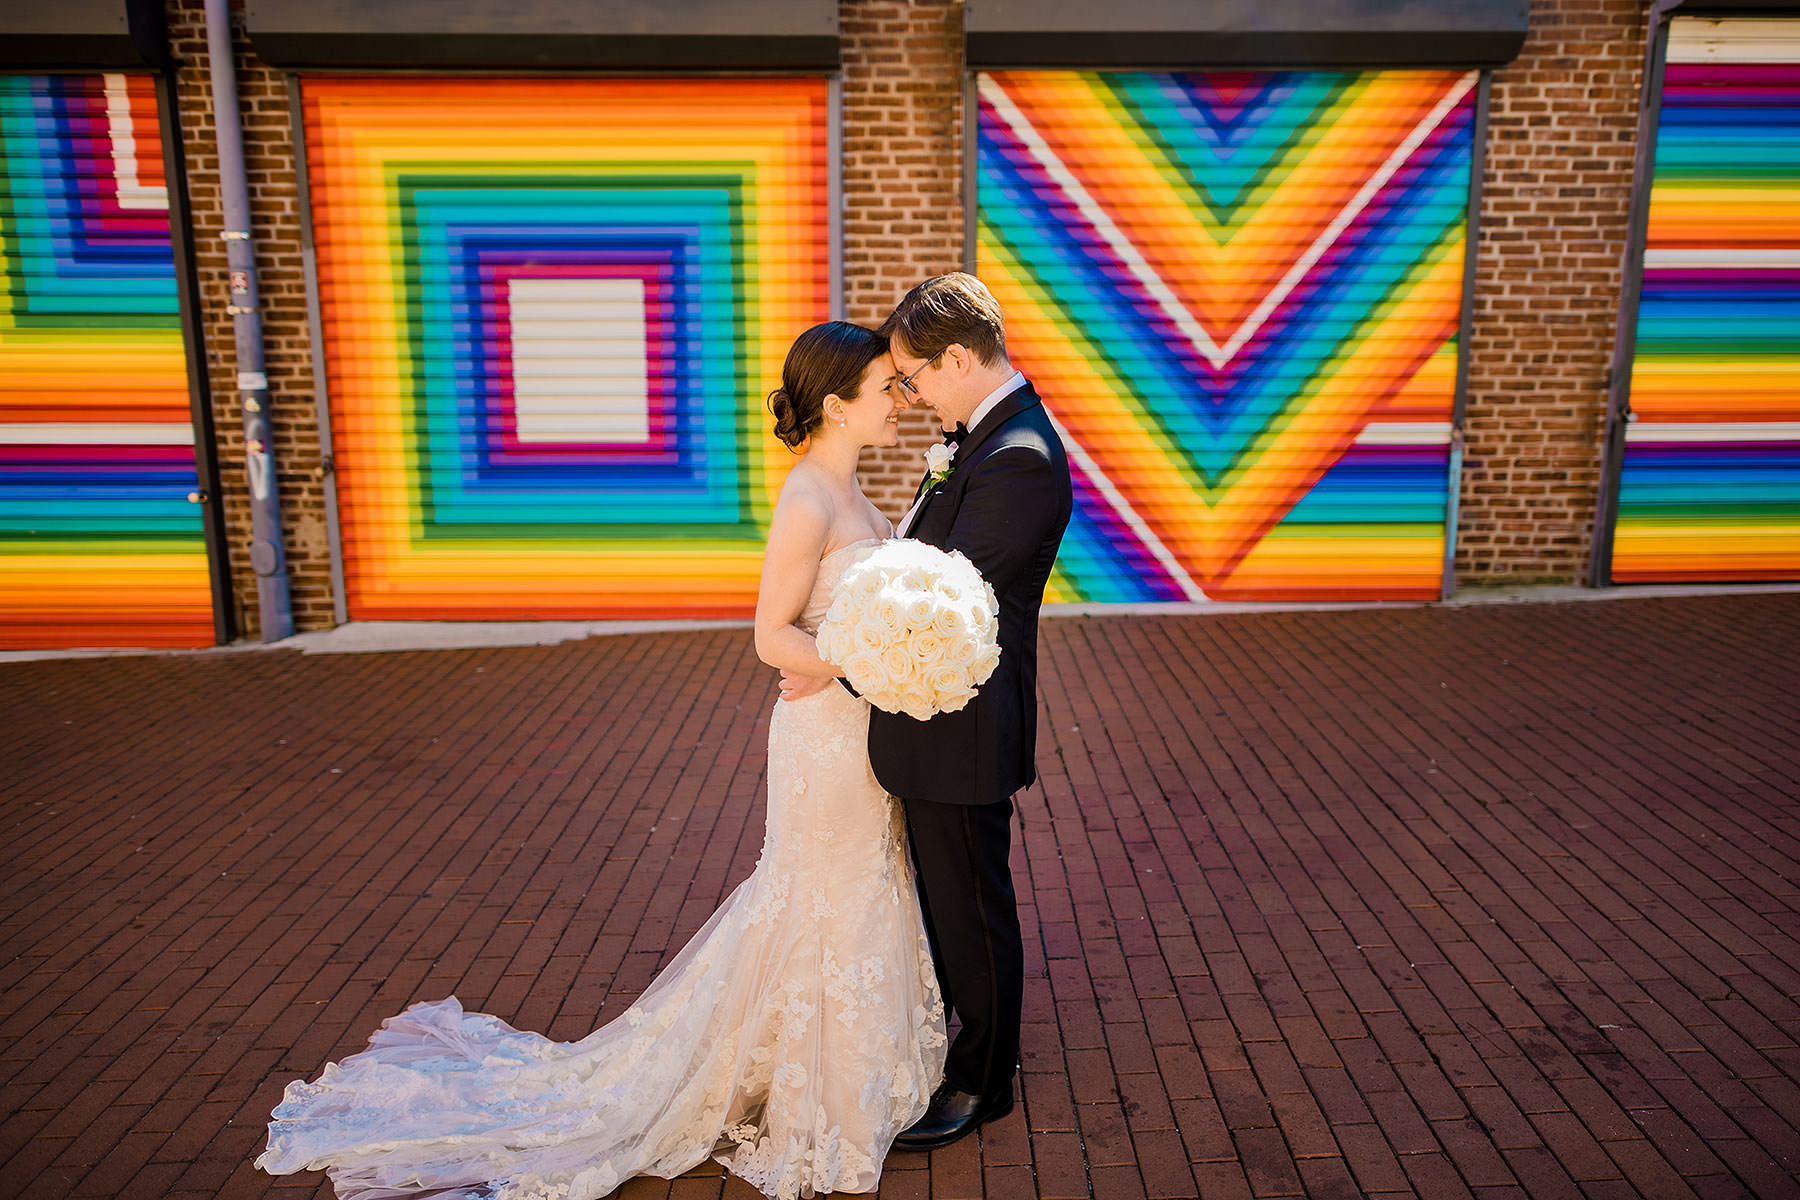 bride and groom wedding photos in blagden alley love mural by Washington DC Wedding Photographer Adam Mason